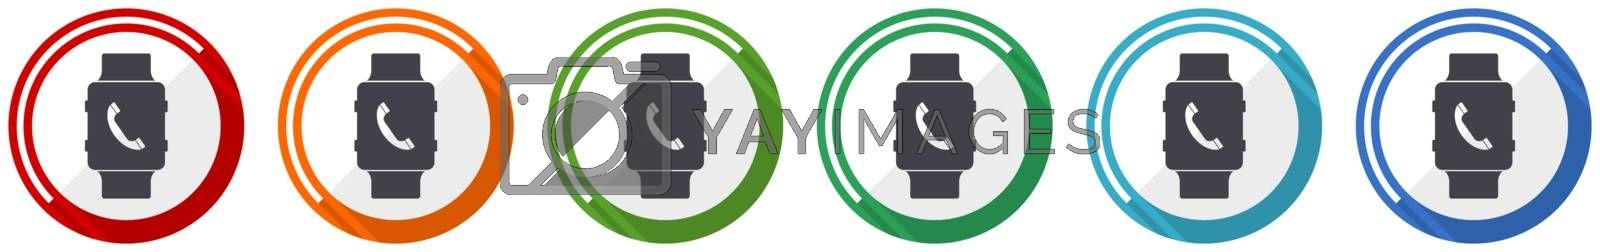 Smartwatch icon set, phone call flat design vector illustration in 6 colors options for webdesign and mobile applications